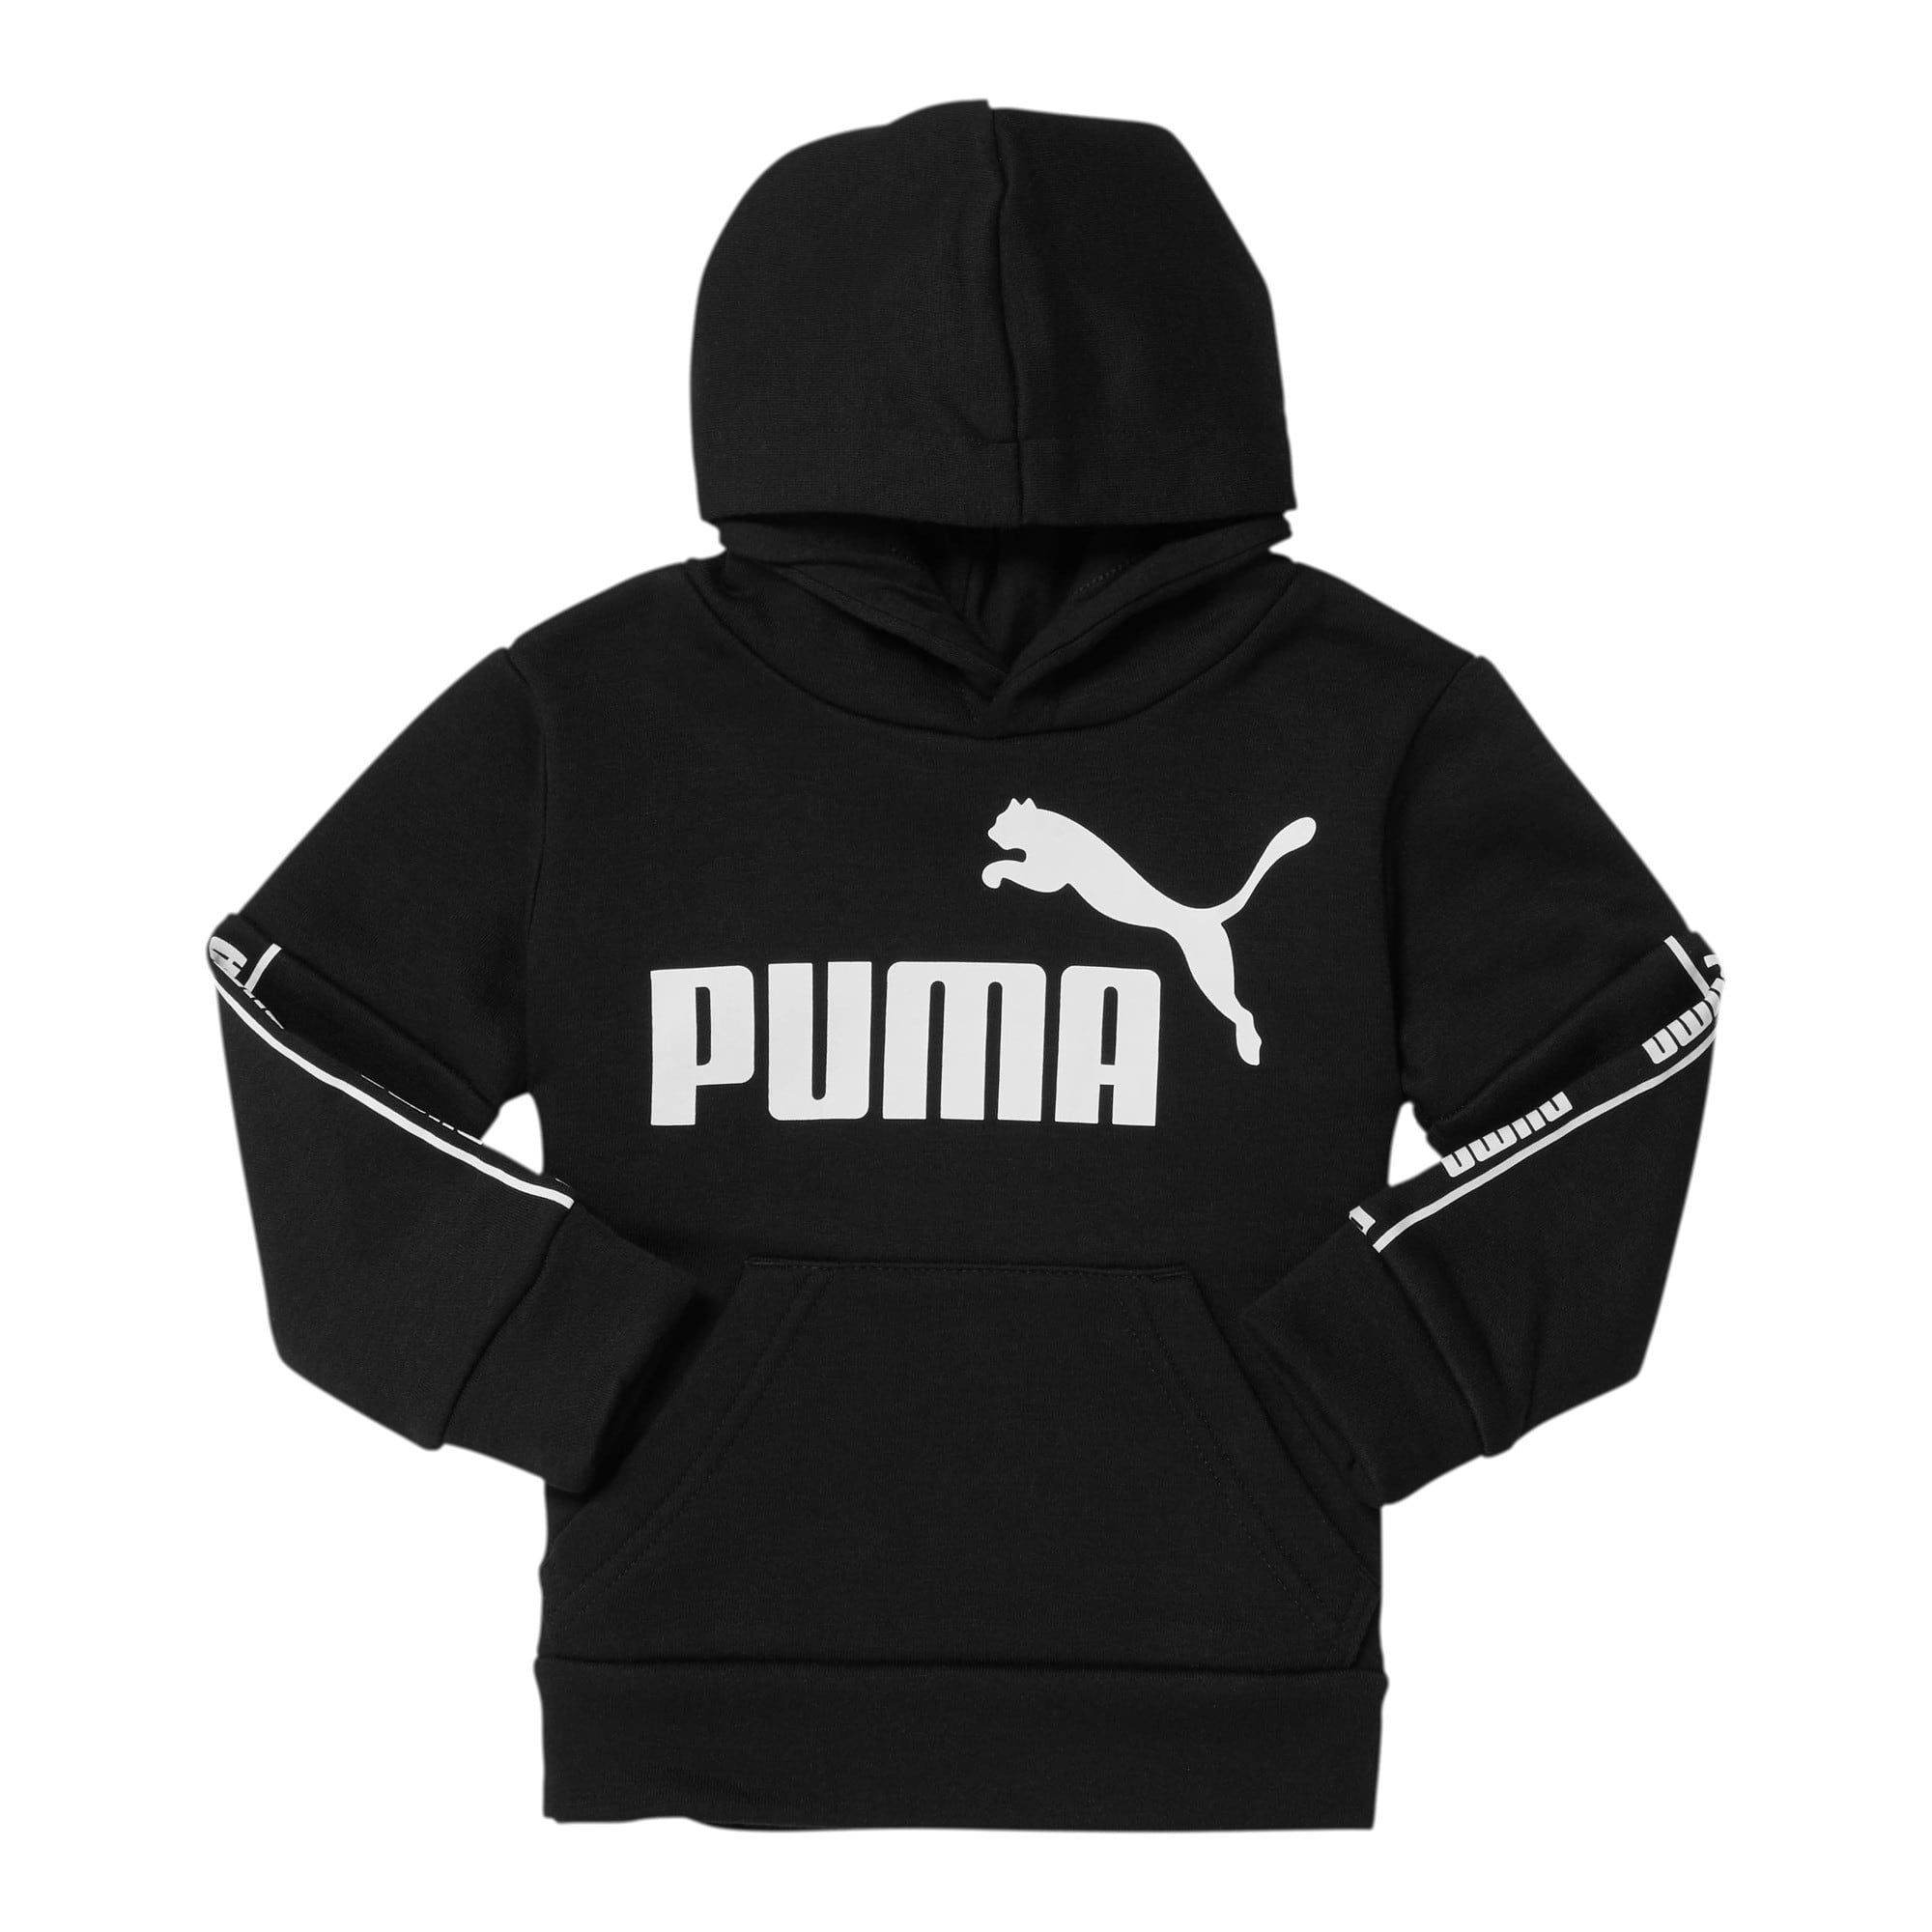 Thumbnail 1 of Amplified Pack Toddler Fleece Hoodie, PUMA BLACK, medium